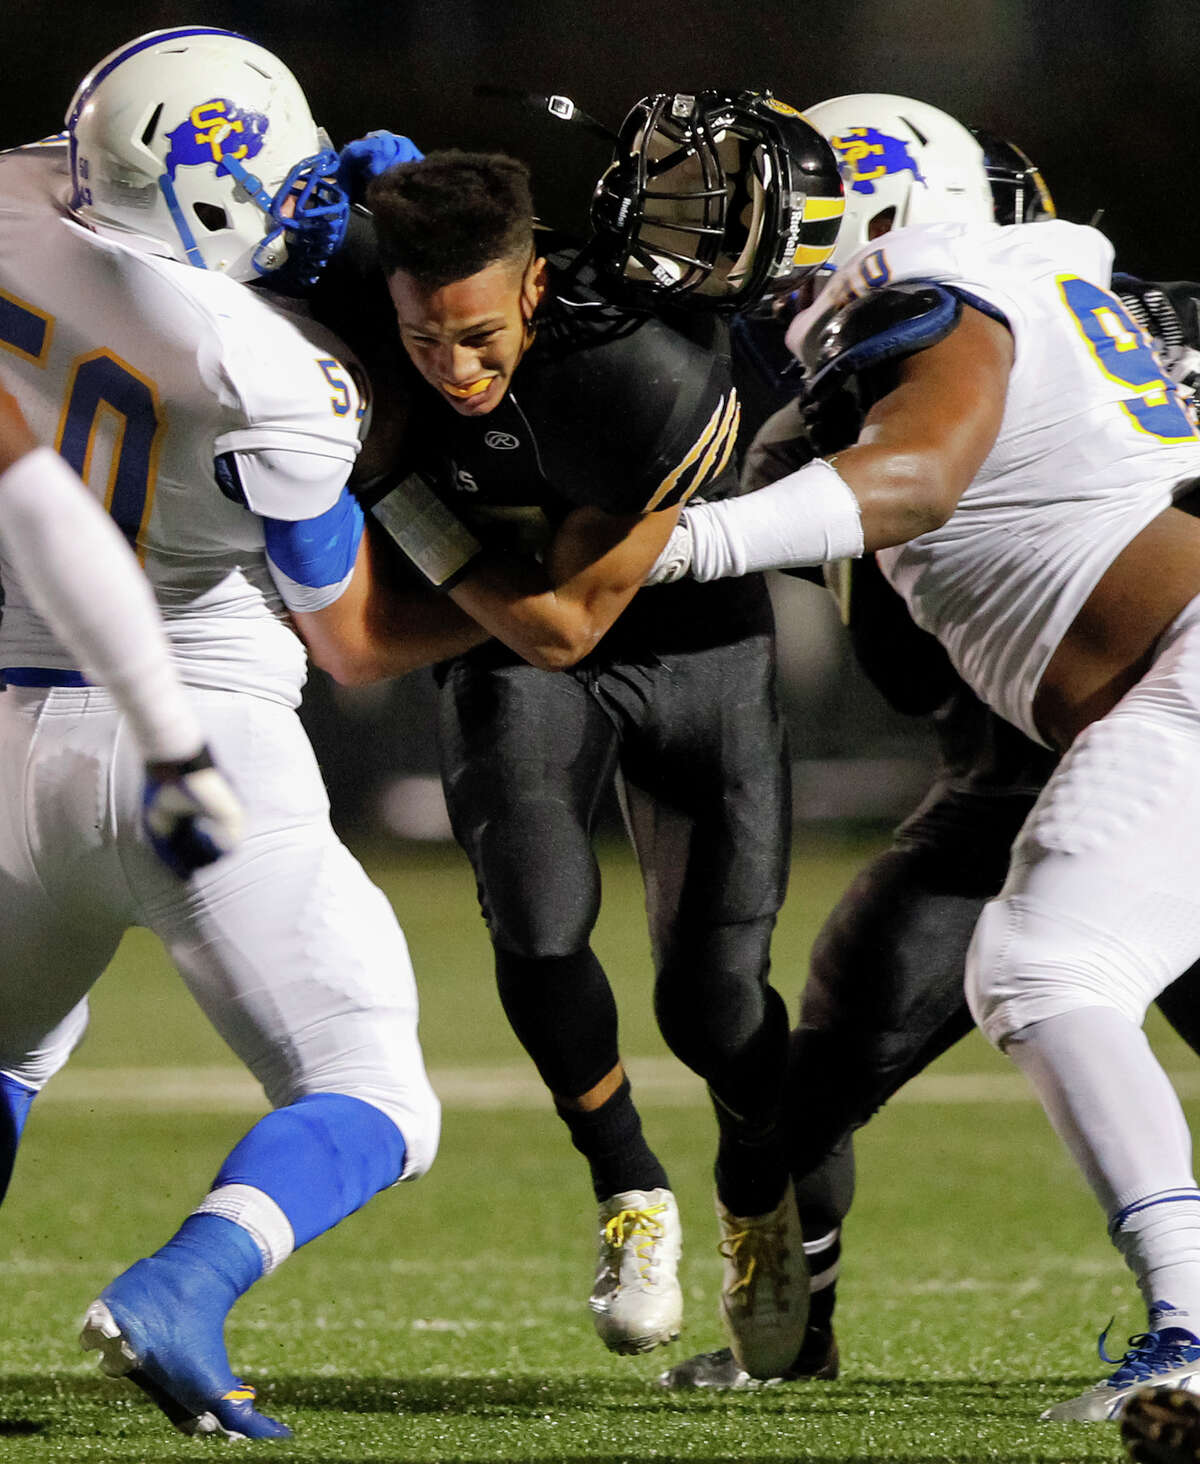 Da'shawn Key (center) loses his helmet as he runs between Clemens Tristen Blake (left) and Eugene Sutton during the first half of their Class 4A Division I first round playoff game at Farris Stadium on Friday, Nov. 15, 2013. MARVIN PFEIFFER/ mpfeiffer@express-news.net